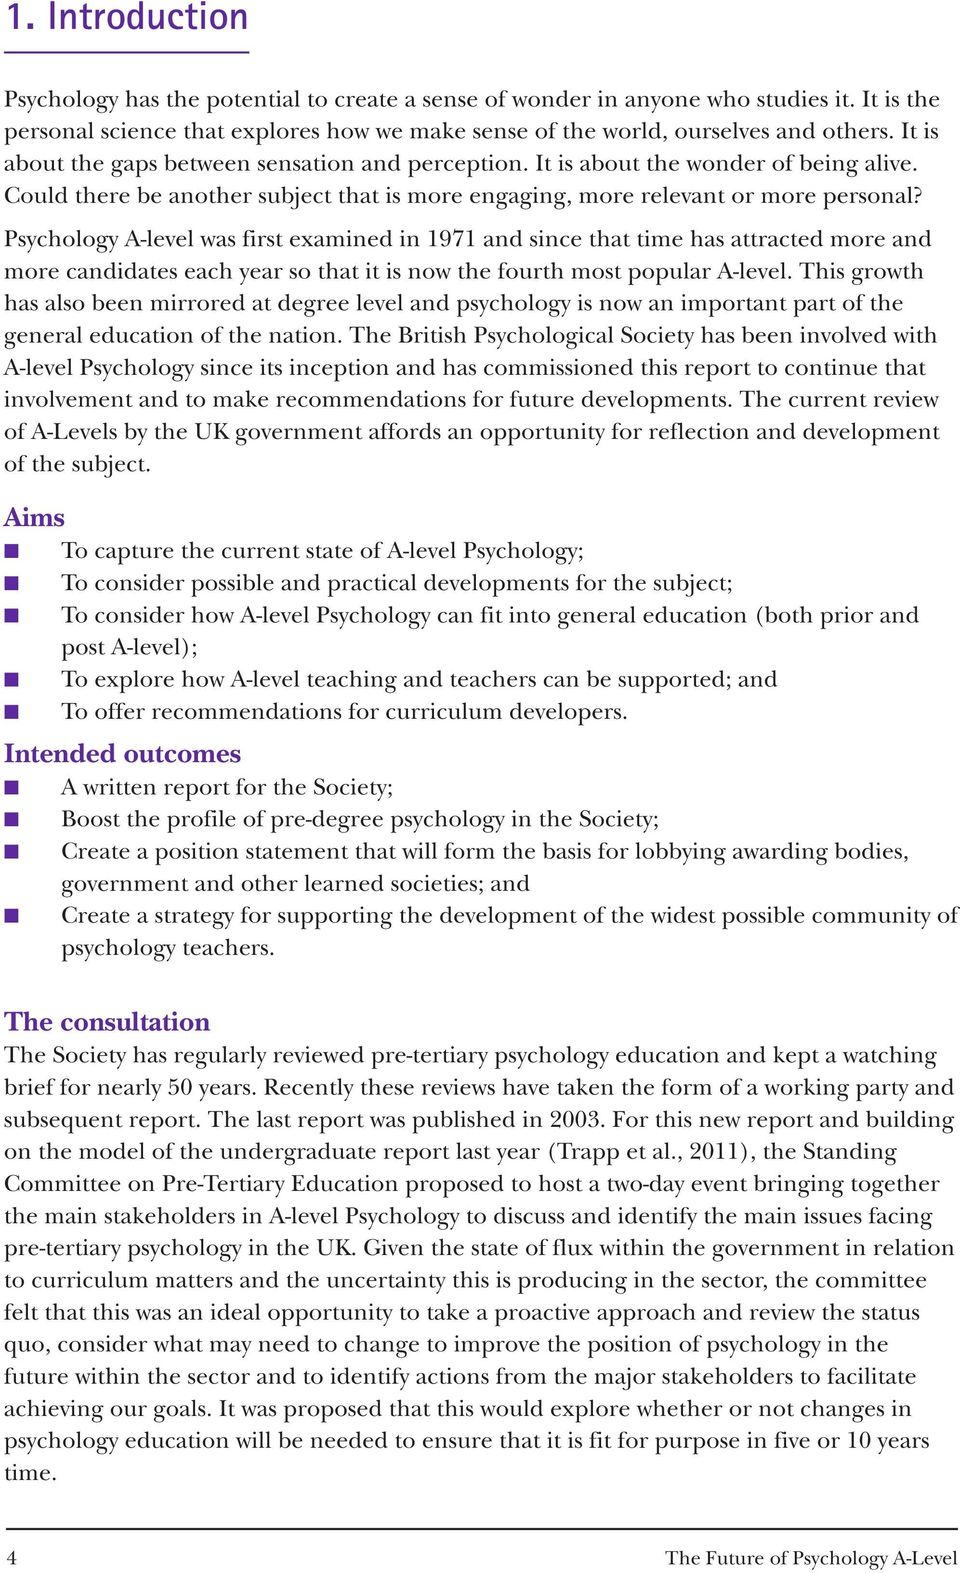 Psychology A-level was first examined in 1971 and since that time has attracted more and more candidates each year so that it is now the fourth most popular A-level.